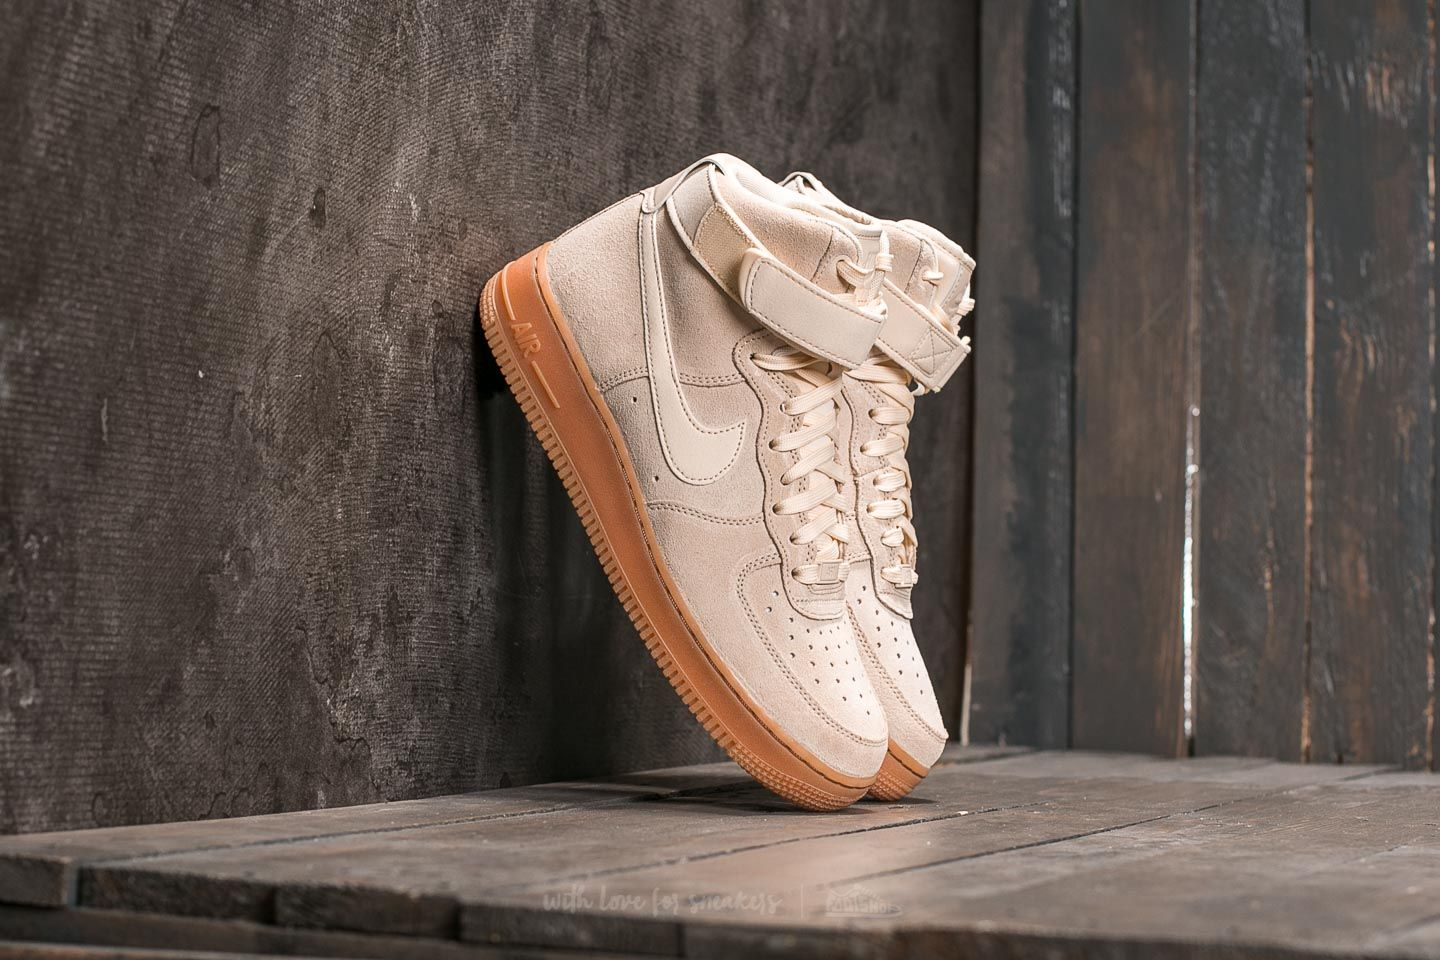 reputable site 52a35 79f98 Nike Air Force 1 High ´07 LV8 Suede